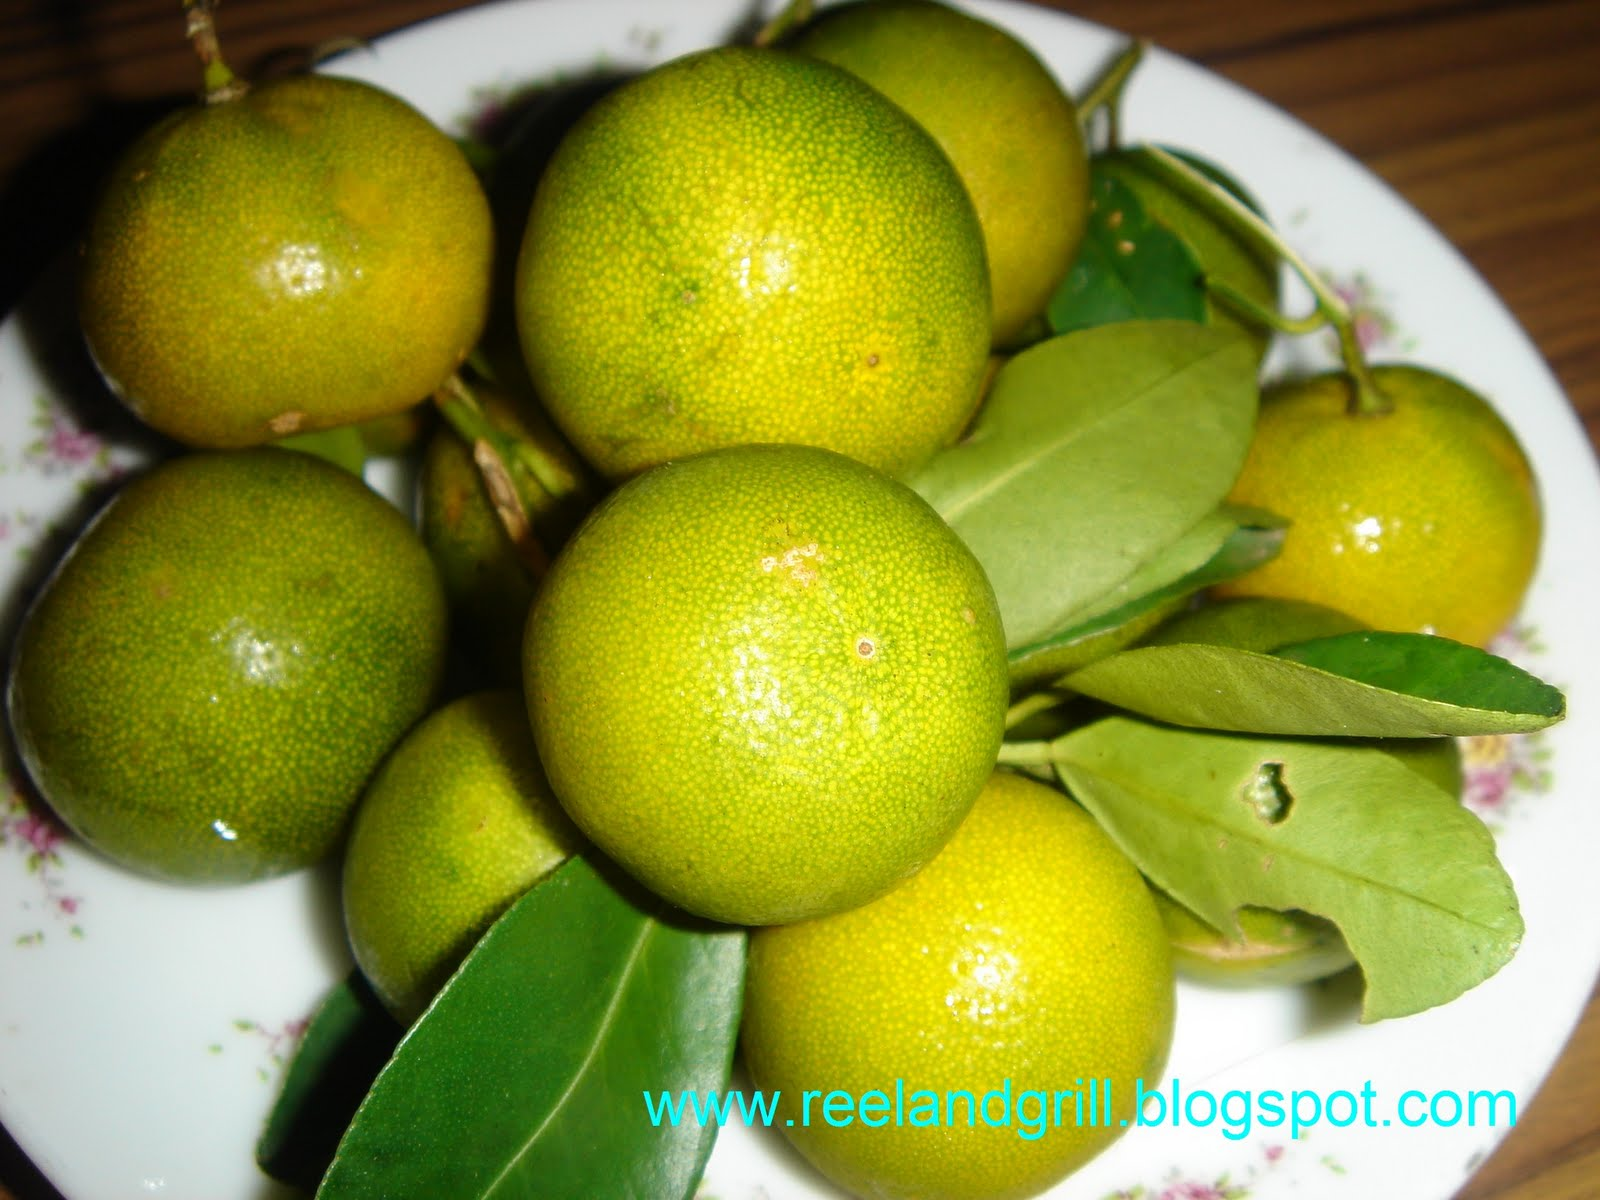 calamansi Calamansi calamansi is a fruit native to the philippines it wasn't popular until not long ago, when the knowledge about its health benefits spread all around the world.